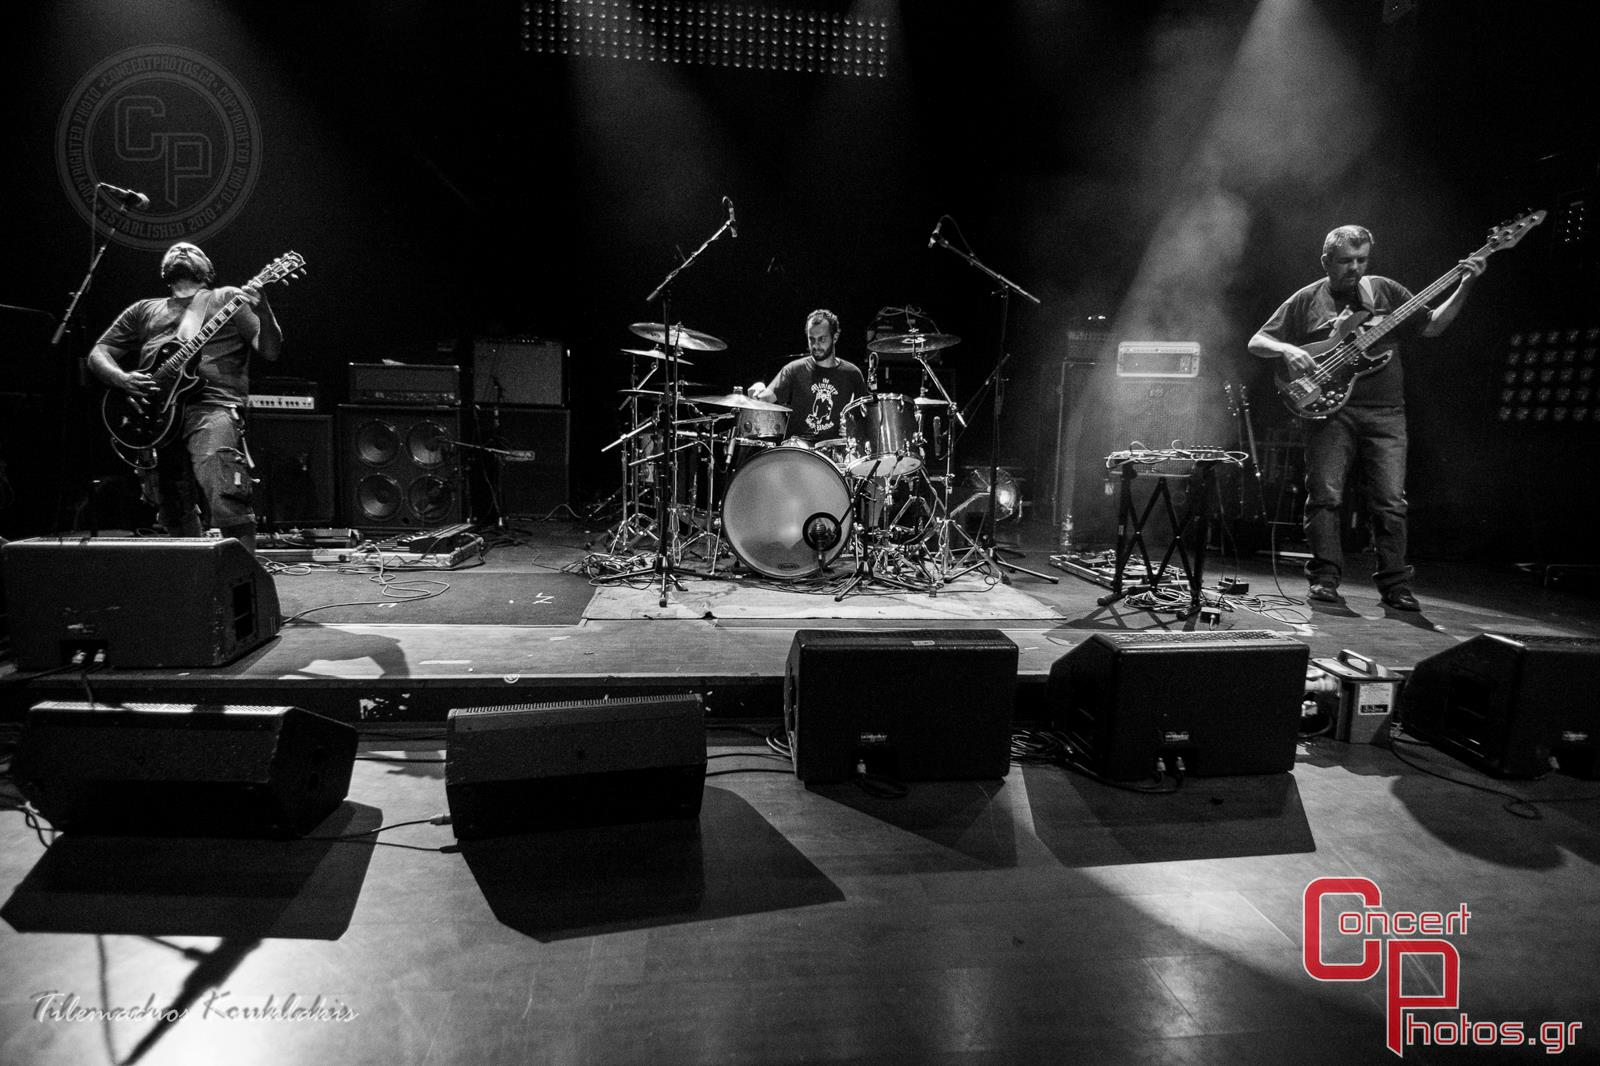 Neurosis-Neurosis photographer:  - concertphotos_20140707_23_56_48-9